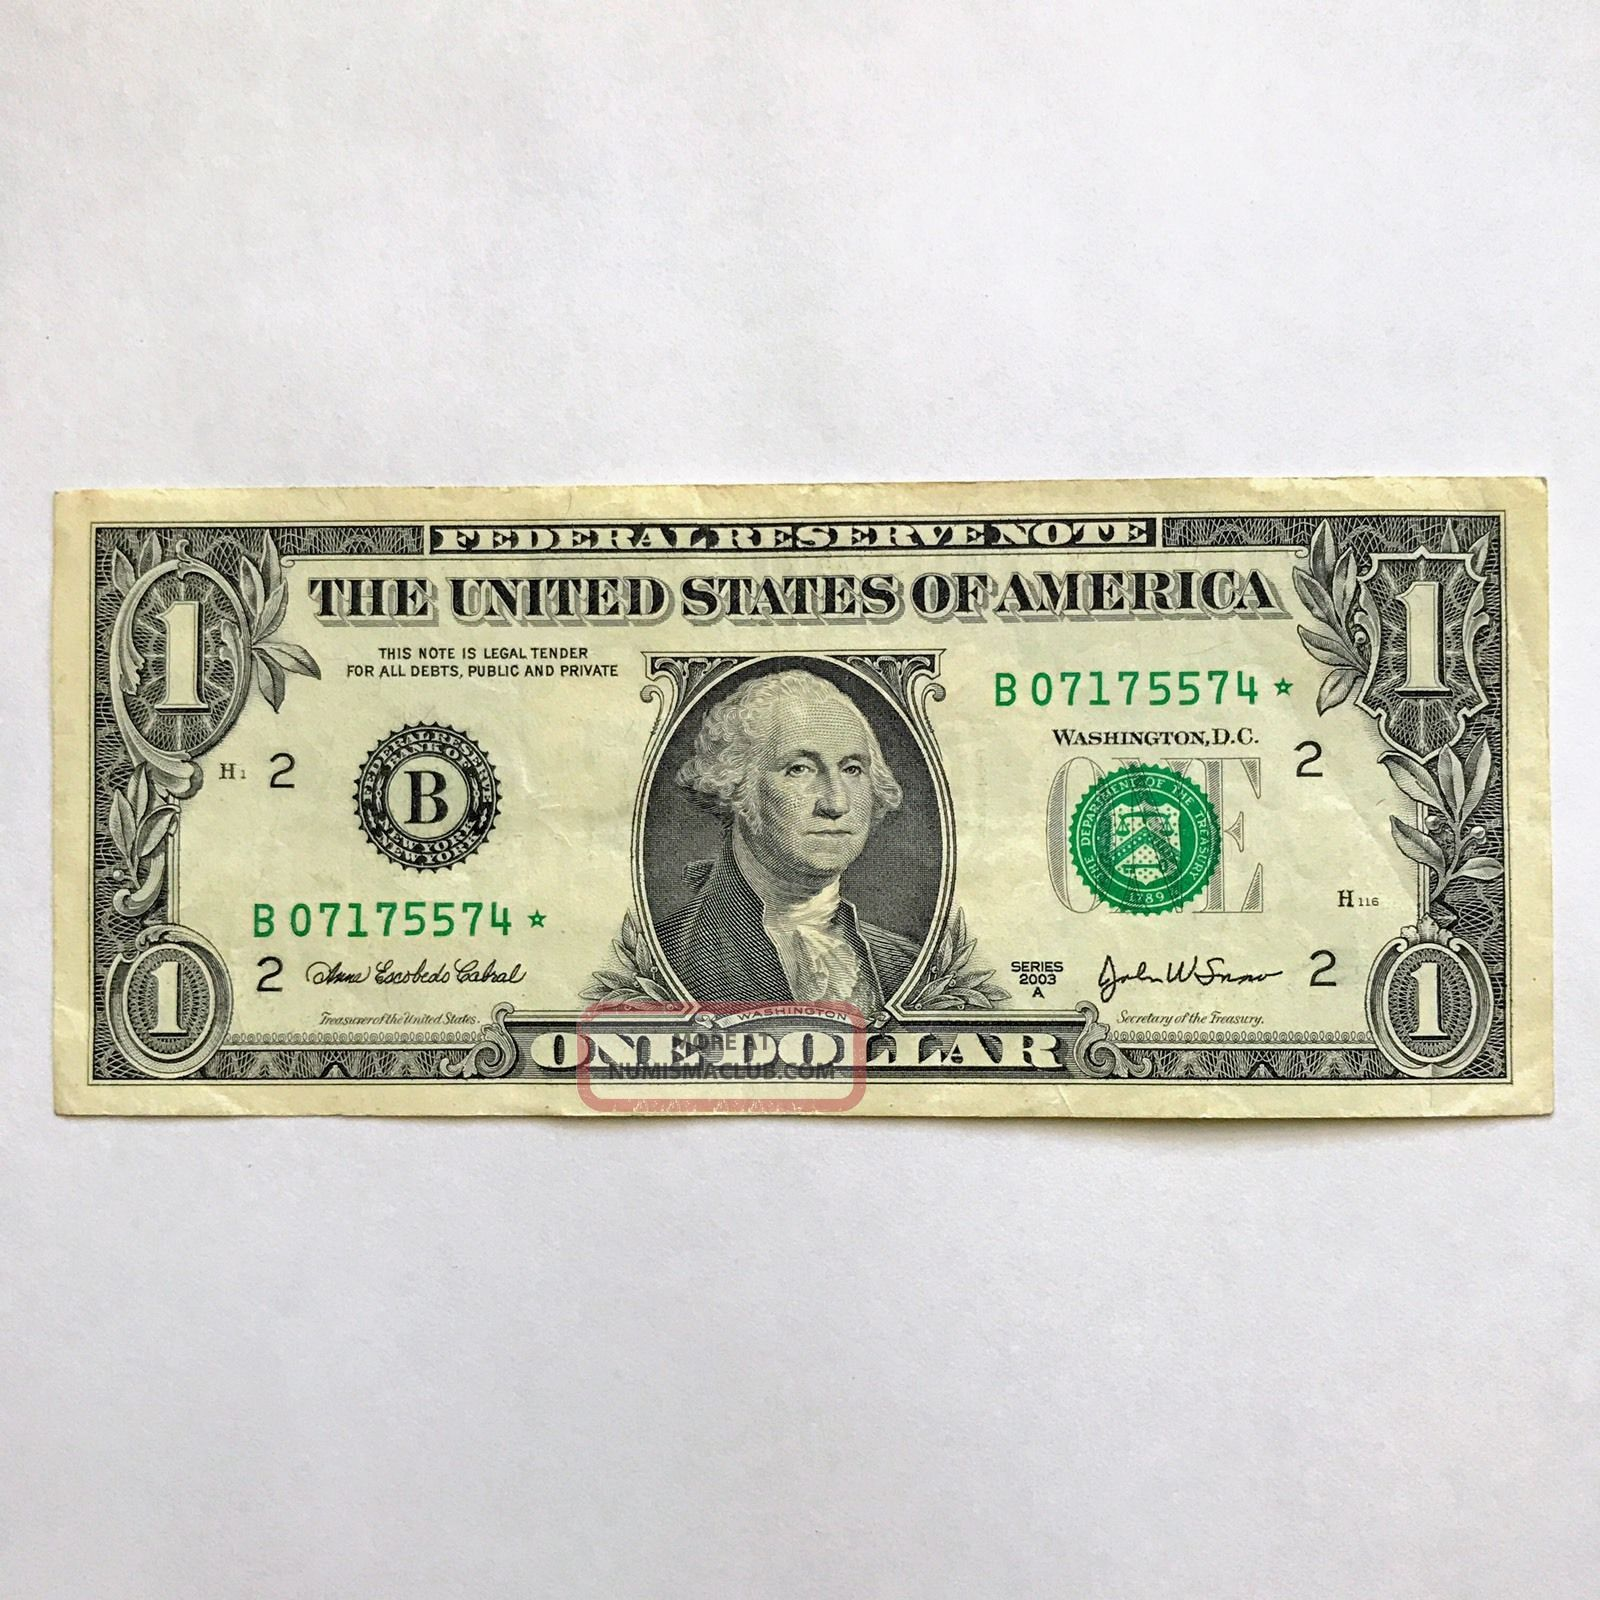 Star 2003 - A $1 Dollar Bill Low Serial B07175574 Ny Federal Reserve Note Small Size Notes photo